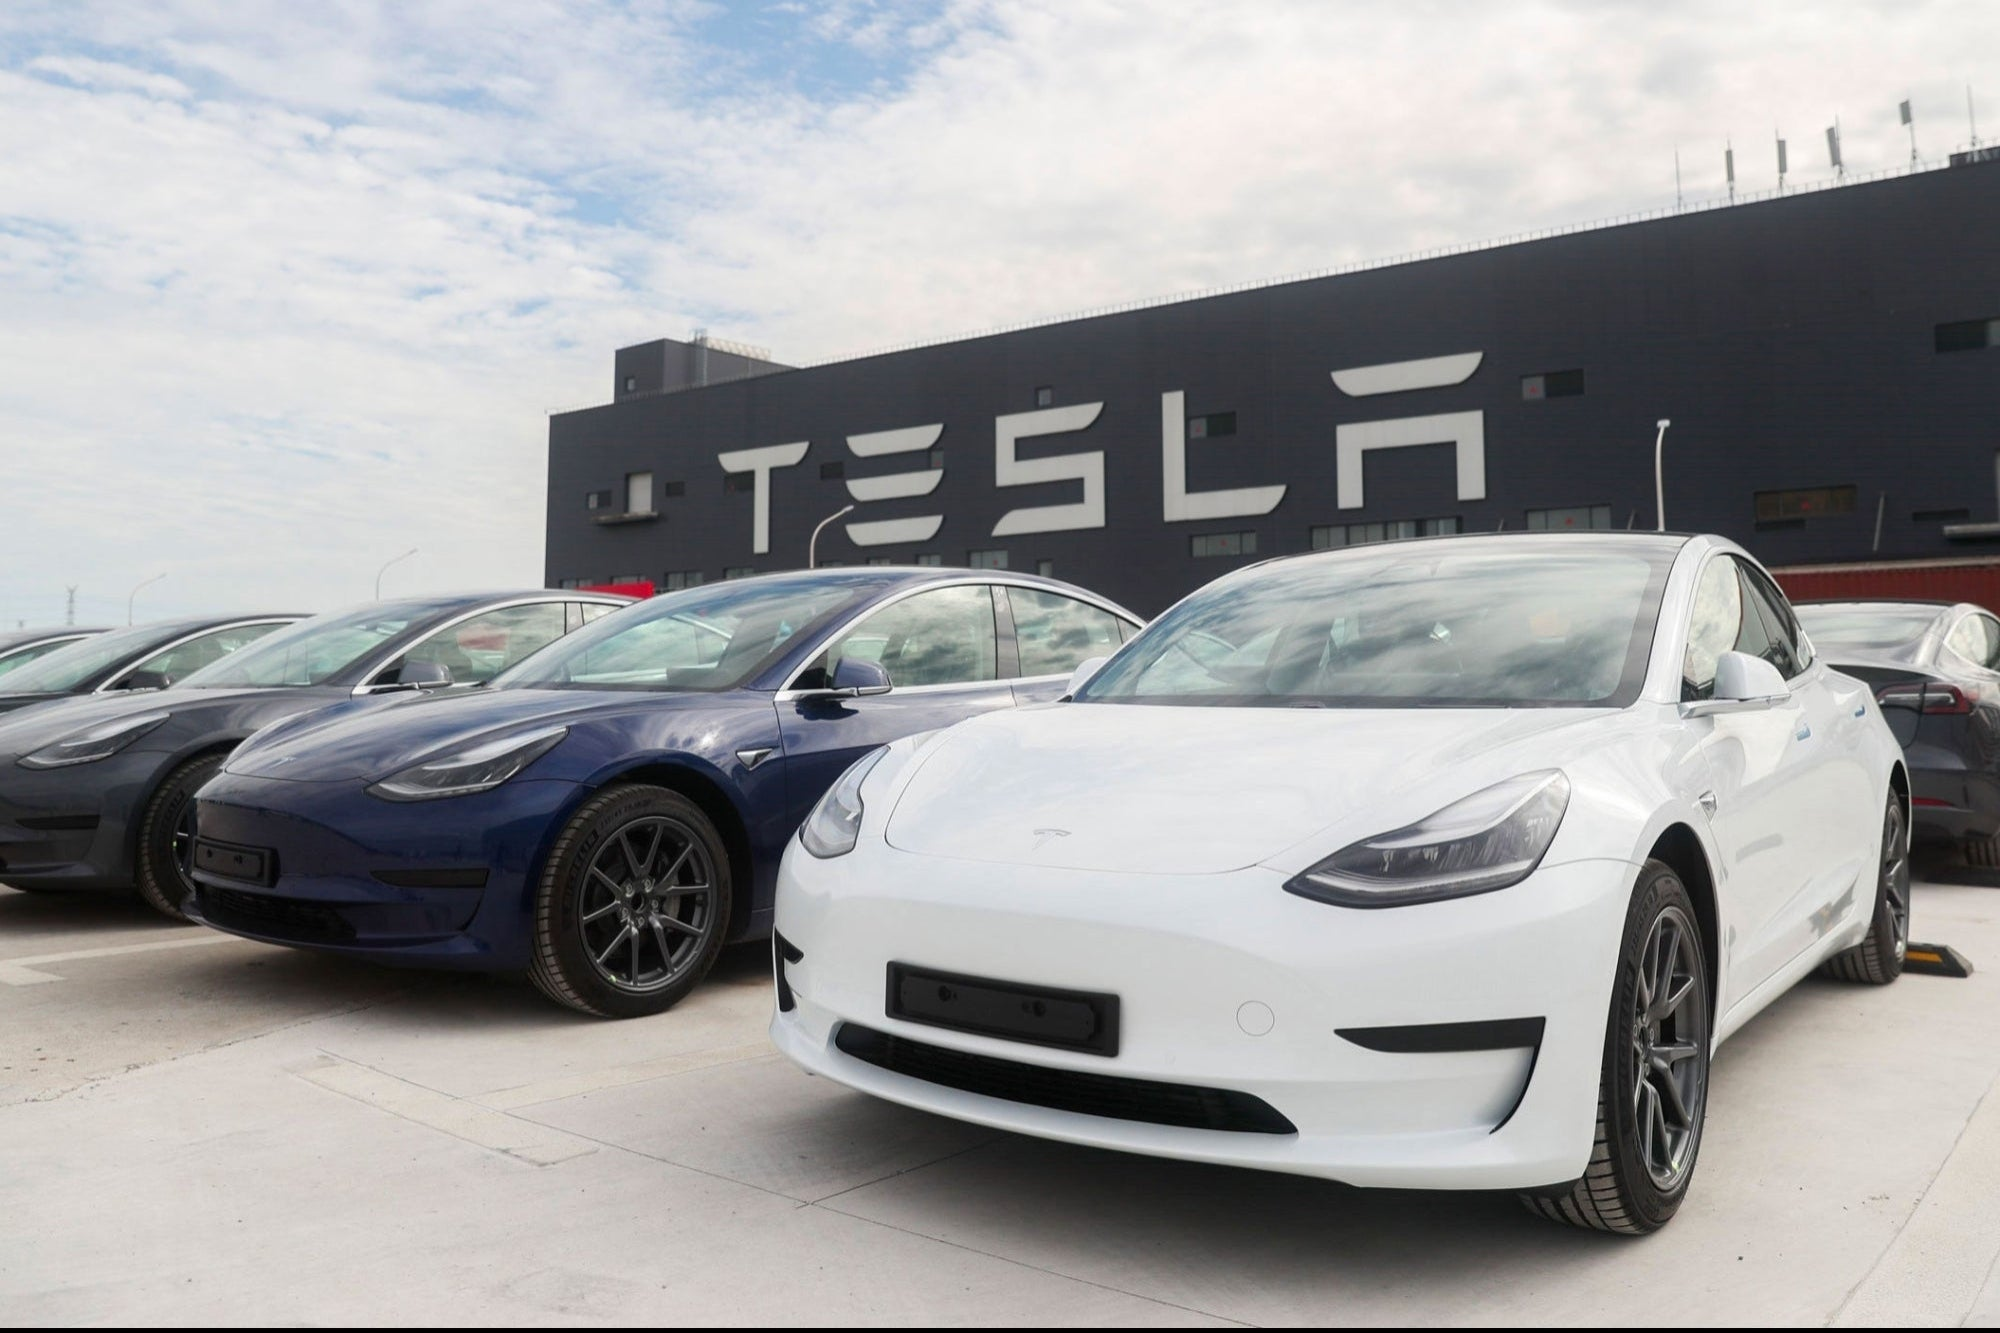 Crash and fire of a driverless Tesla leaves two dead and causes company shares to fall